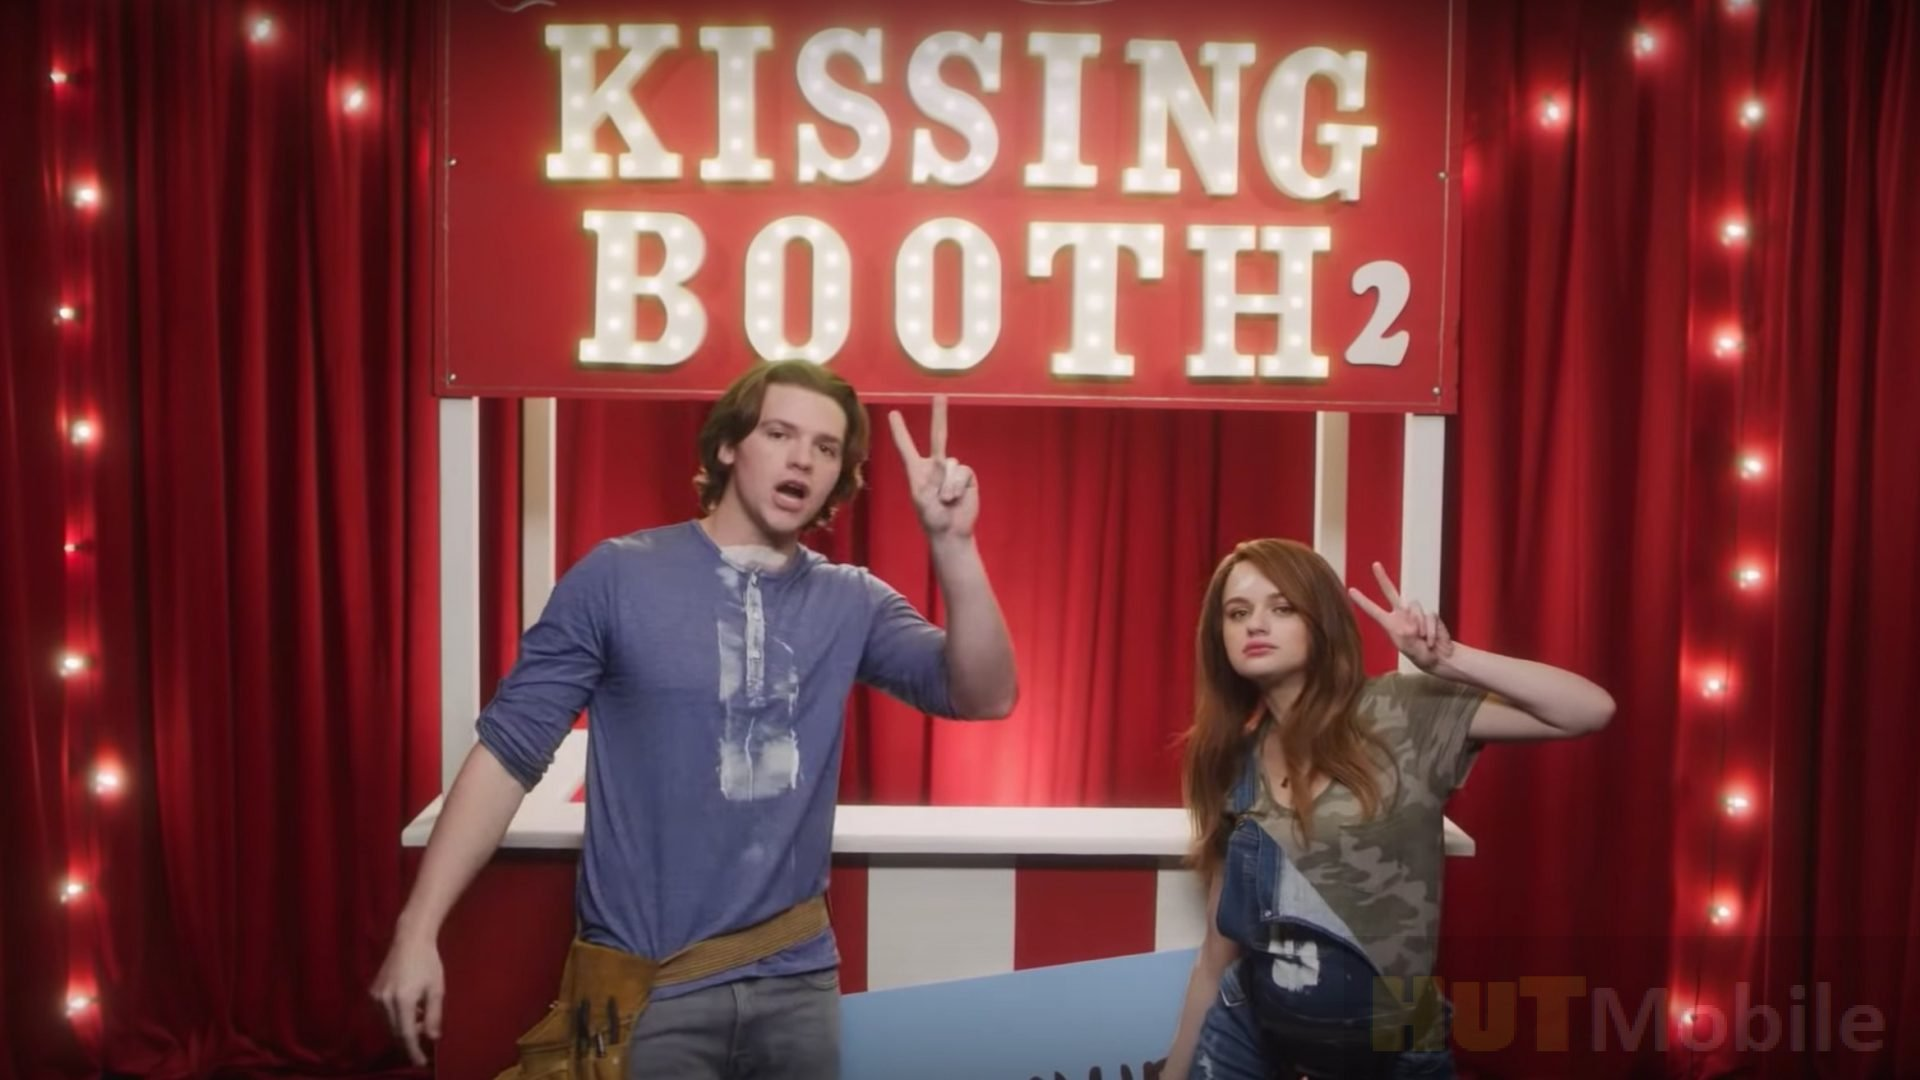 The Kissing Booth 2 Movie Download In Hd Print Free Download Hut Mobile